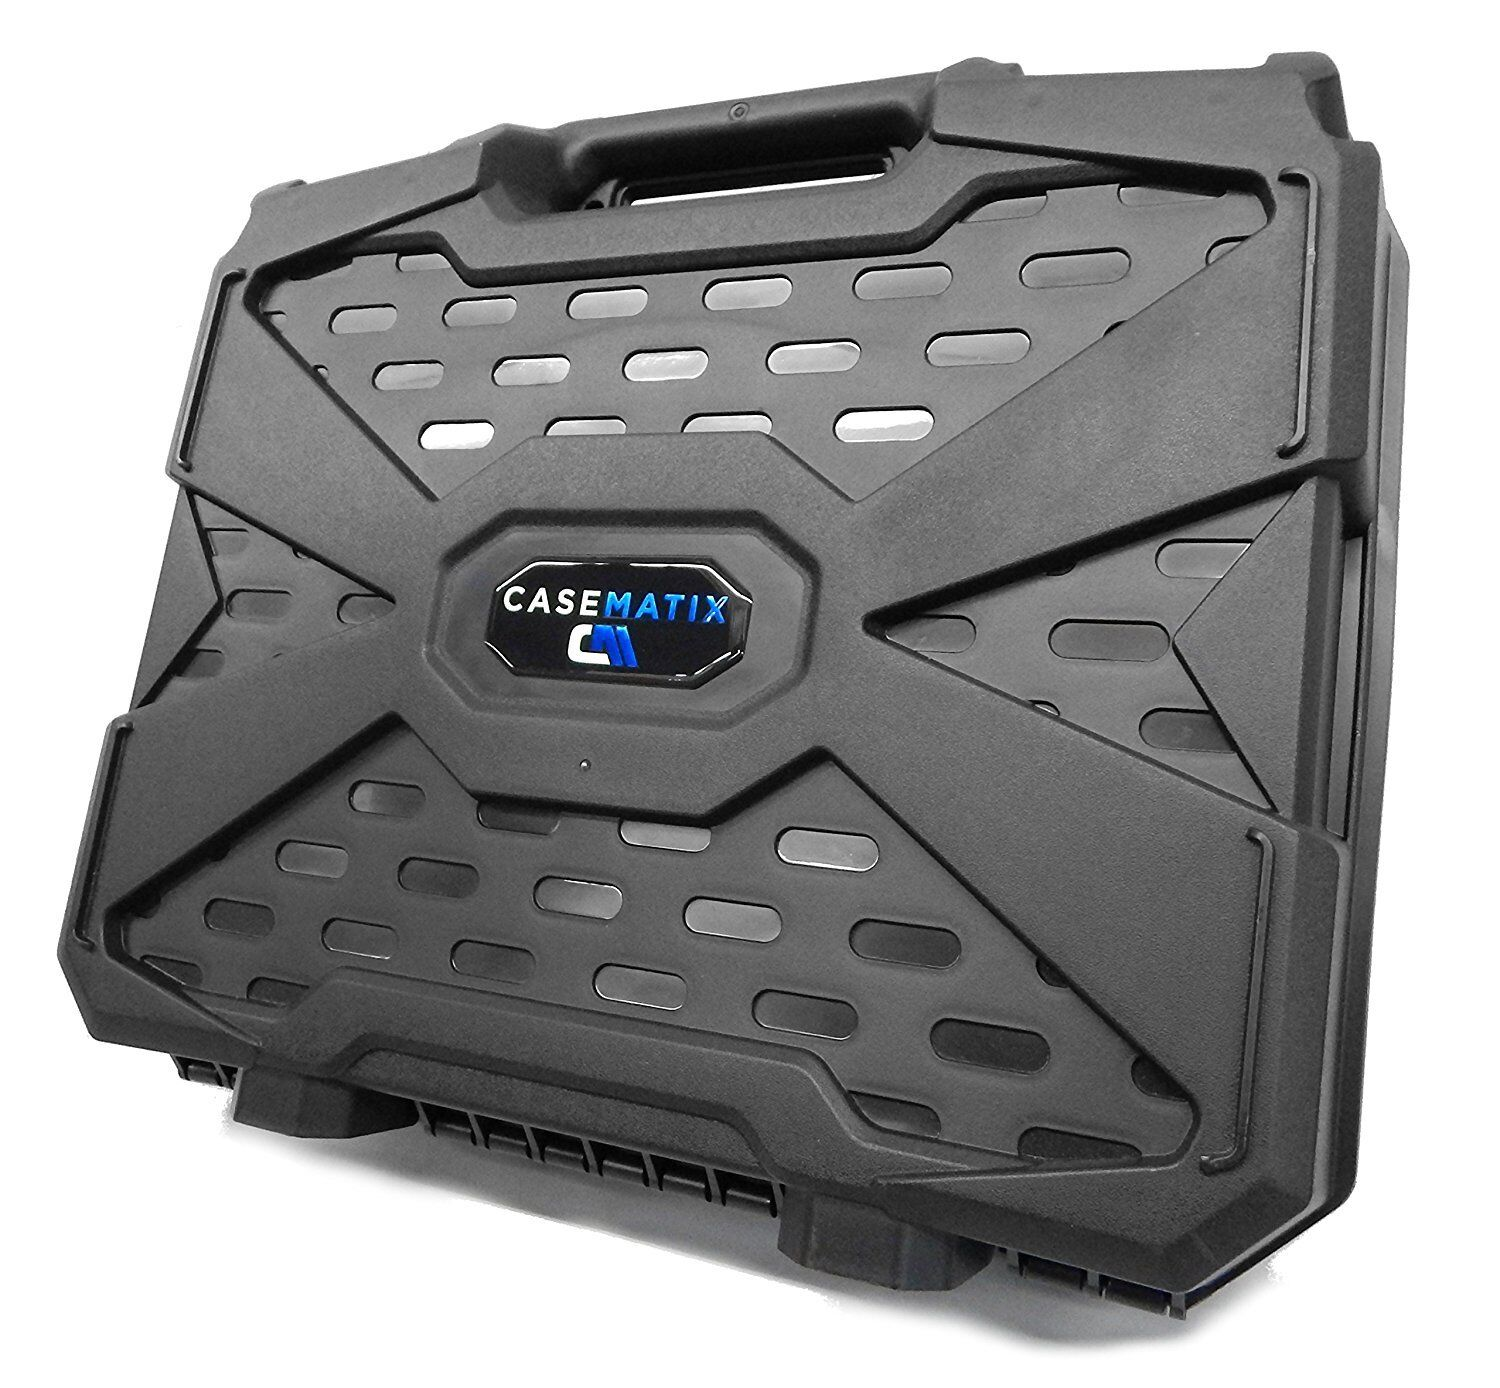 HOBBYCASE RC Transmitter Case and Accessories Carry Borsa – Fits Remote Control ,